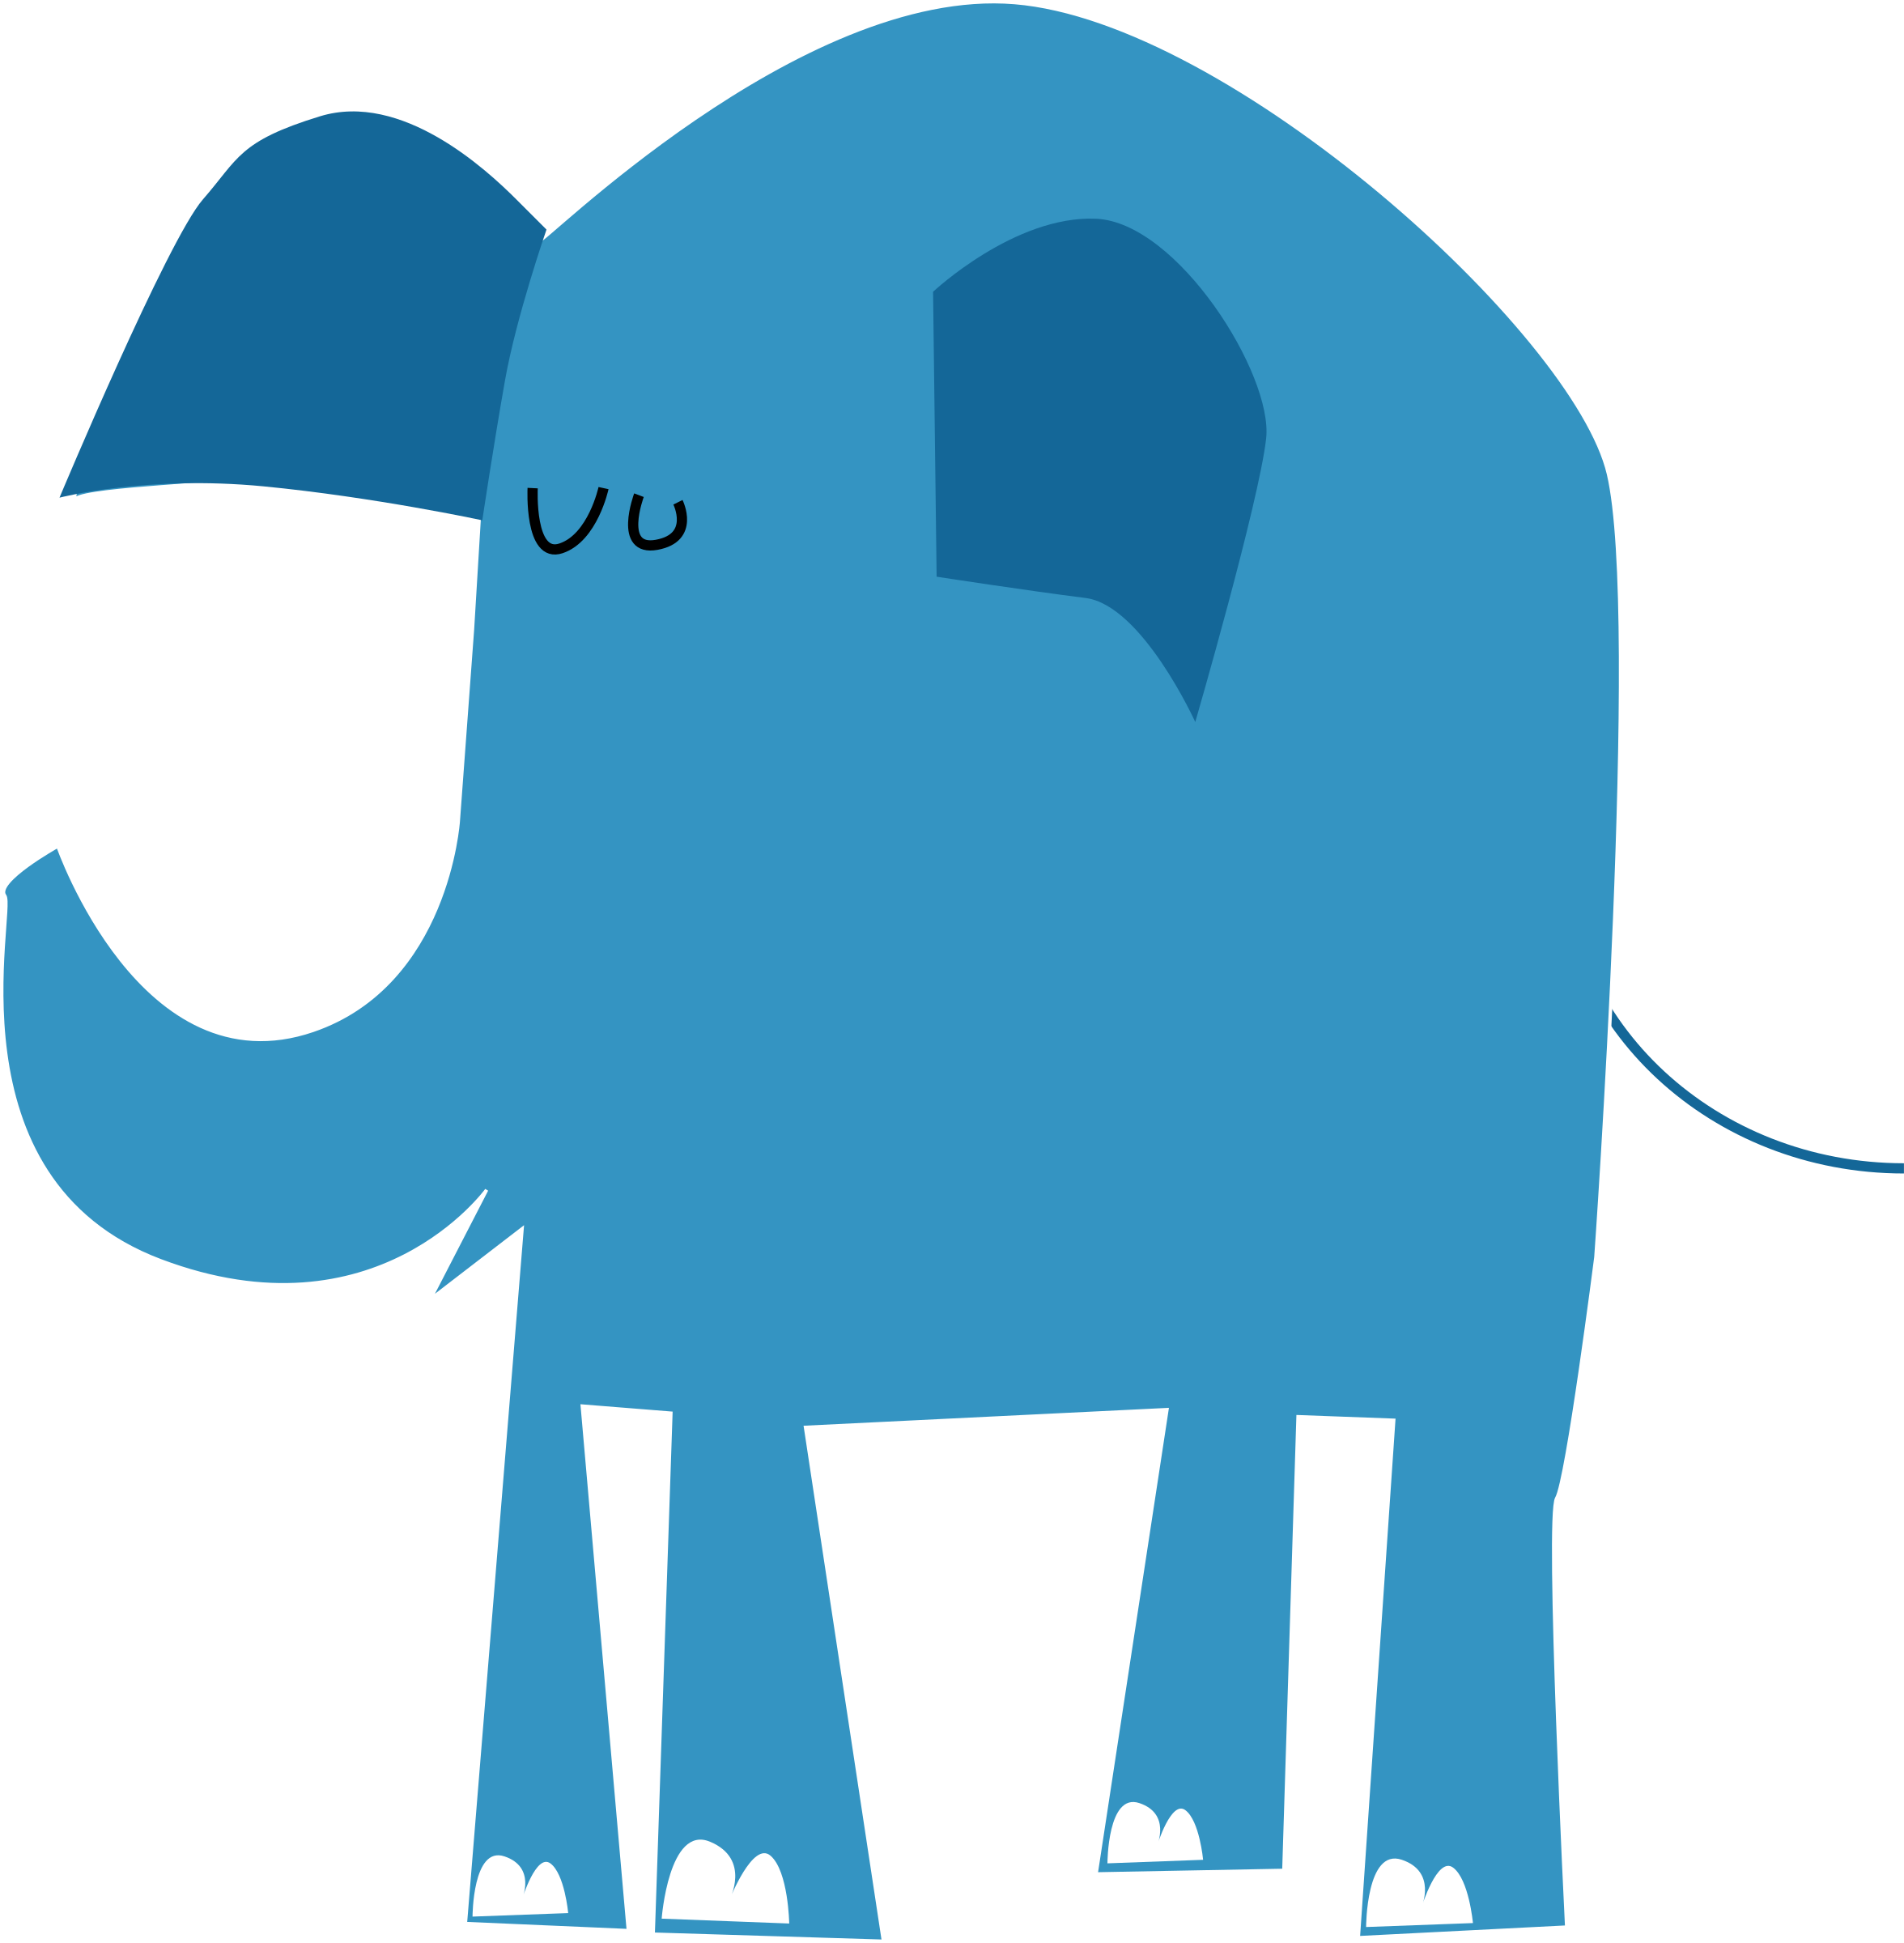 blue elephant without text by talekids